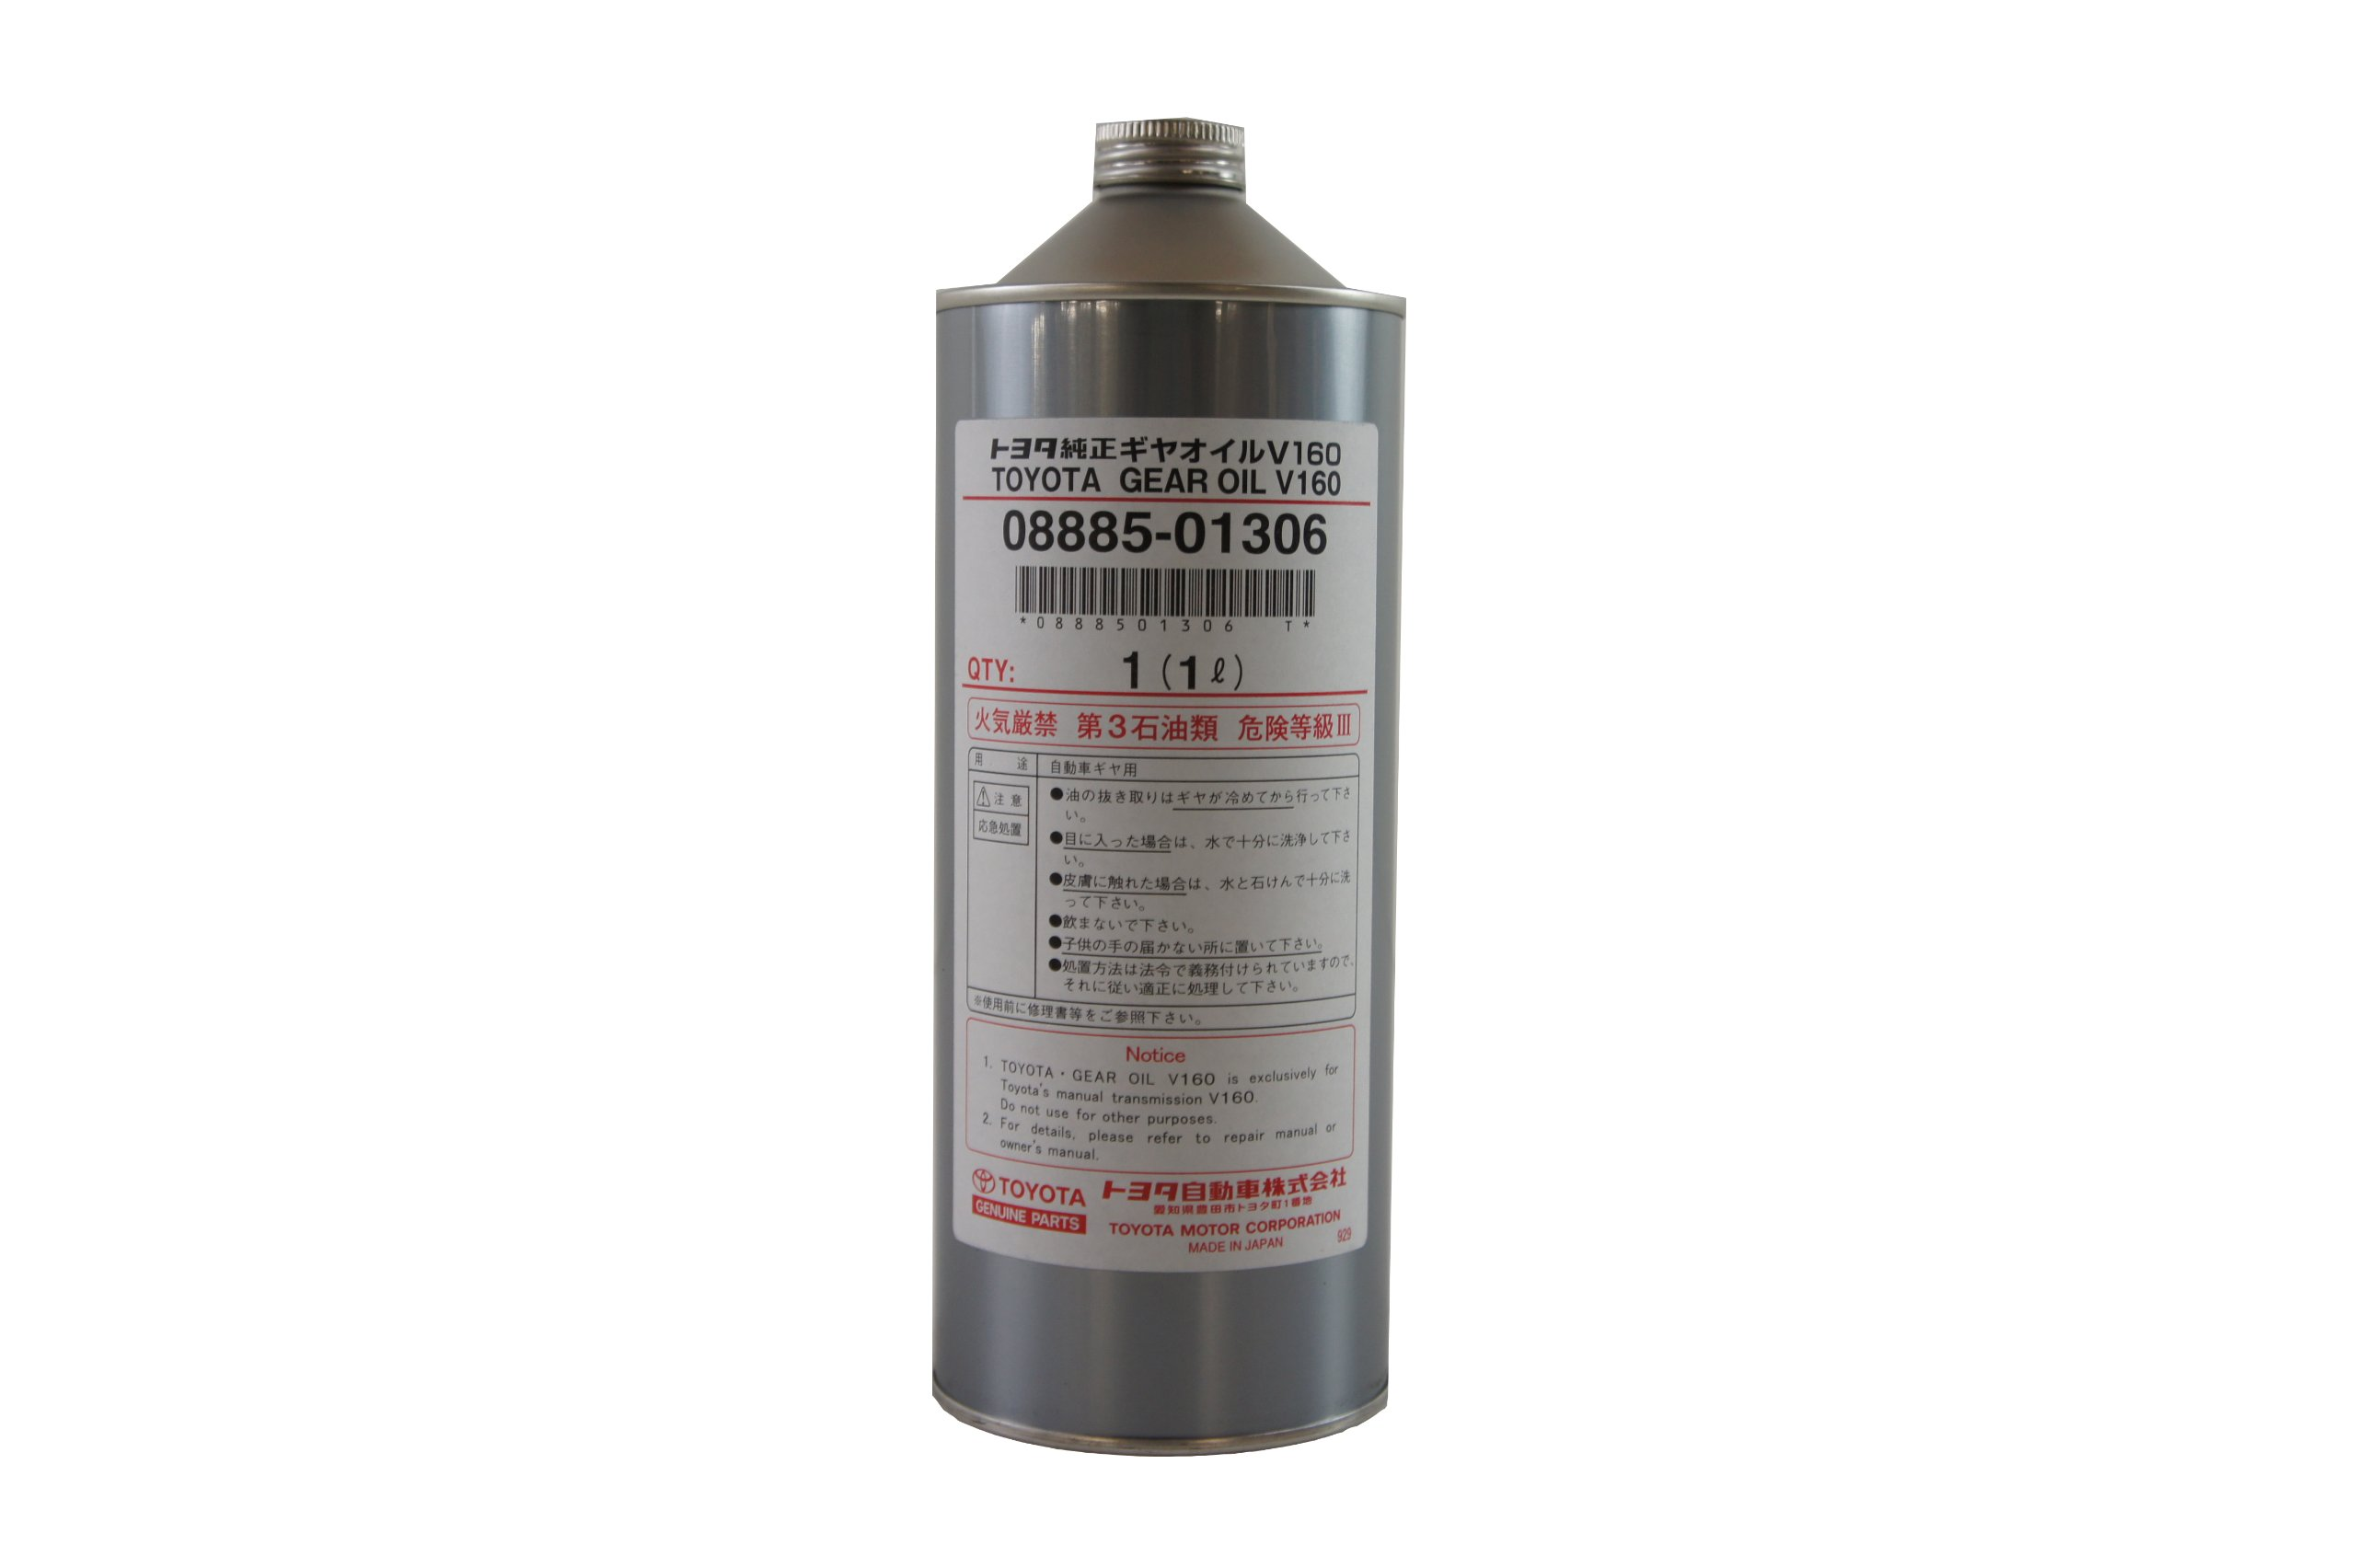 Toyota Genuine Fluid 08885-01306 Castle V160 Gear Lube - 1 liter by TOYOTA